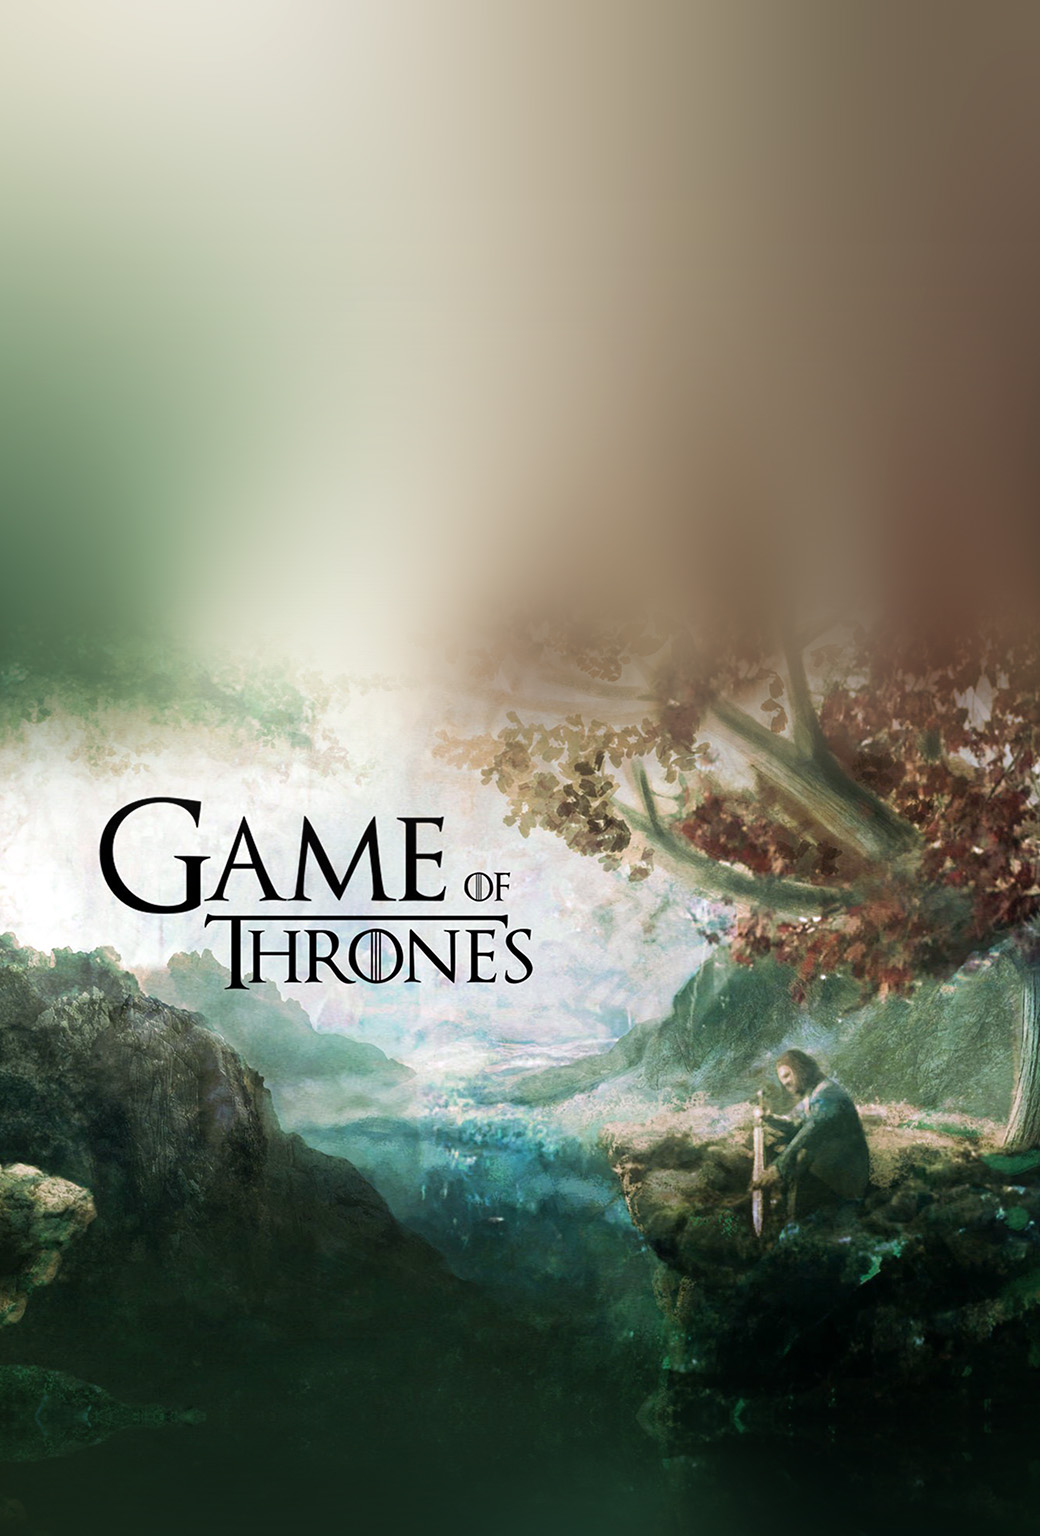 Hd Game Wallpapers For Iphone 6 Game Of Thrones Wallpapers For Iphone And Ipad